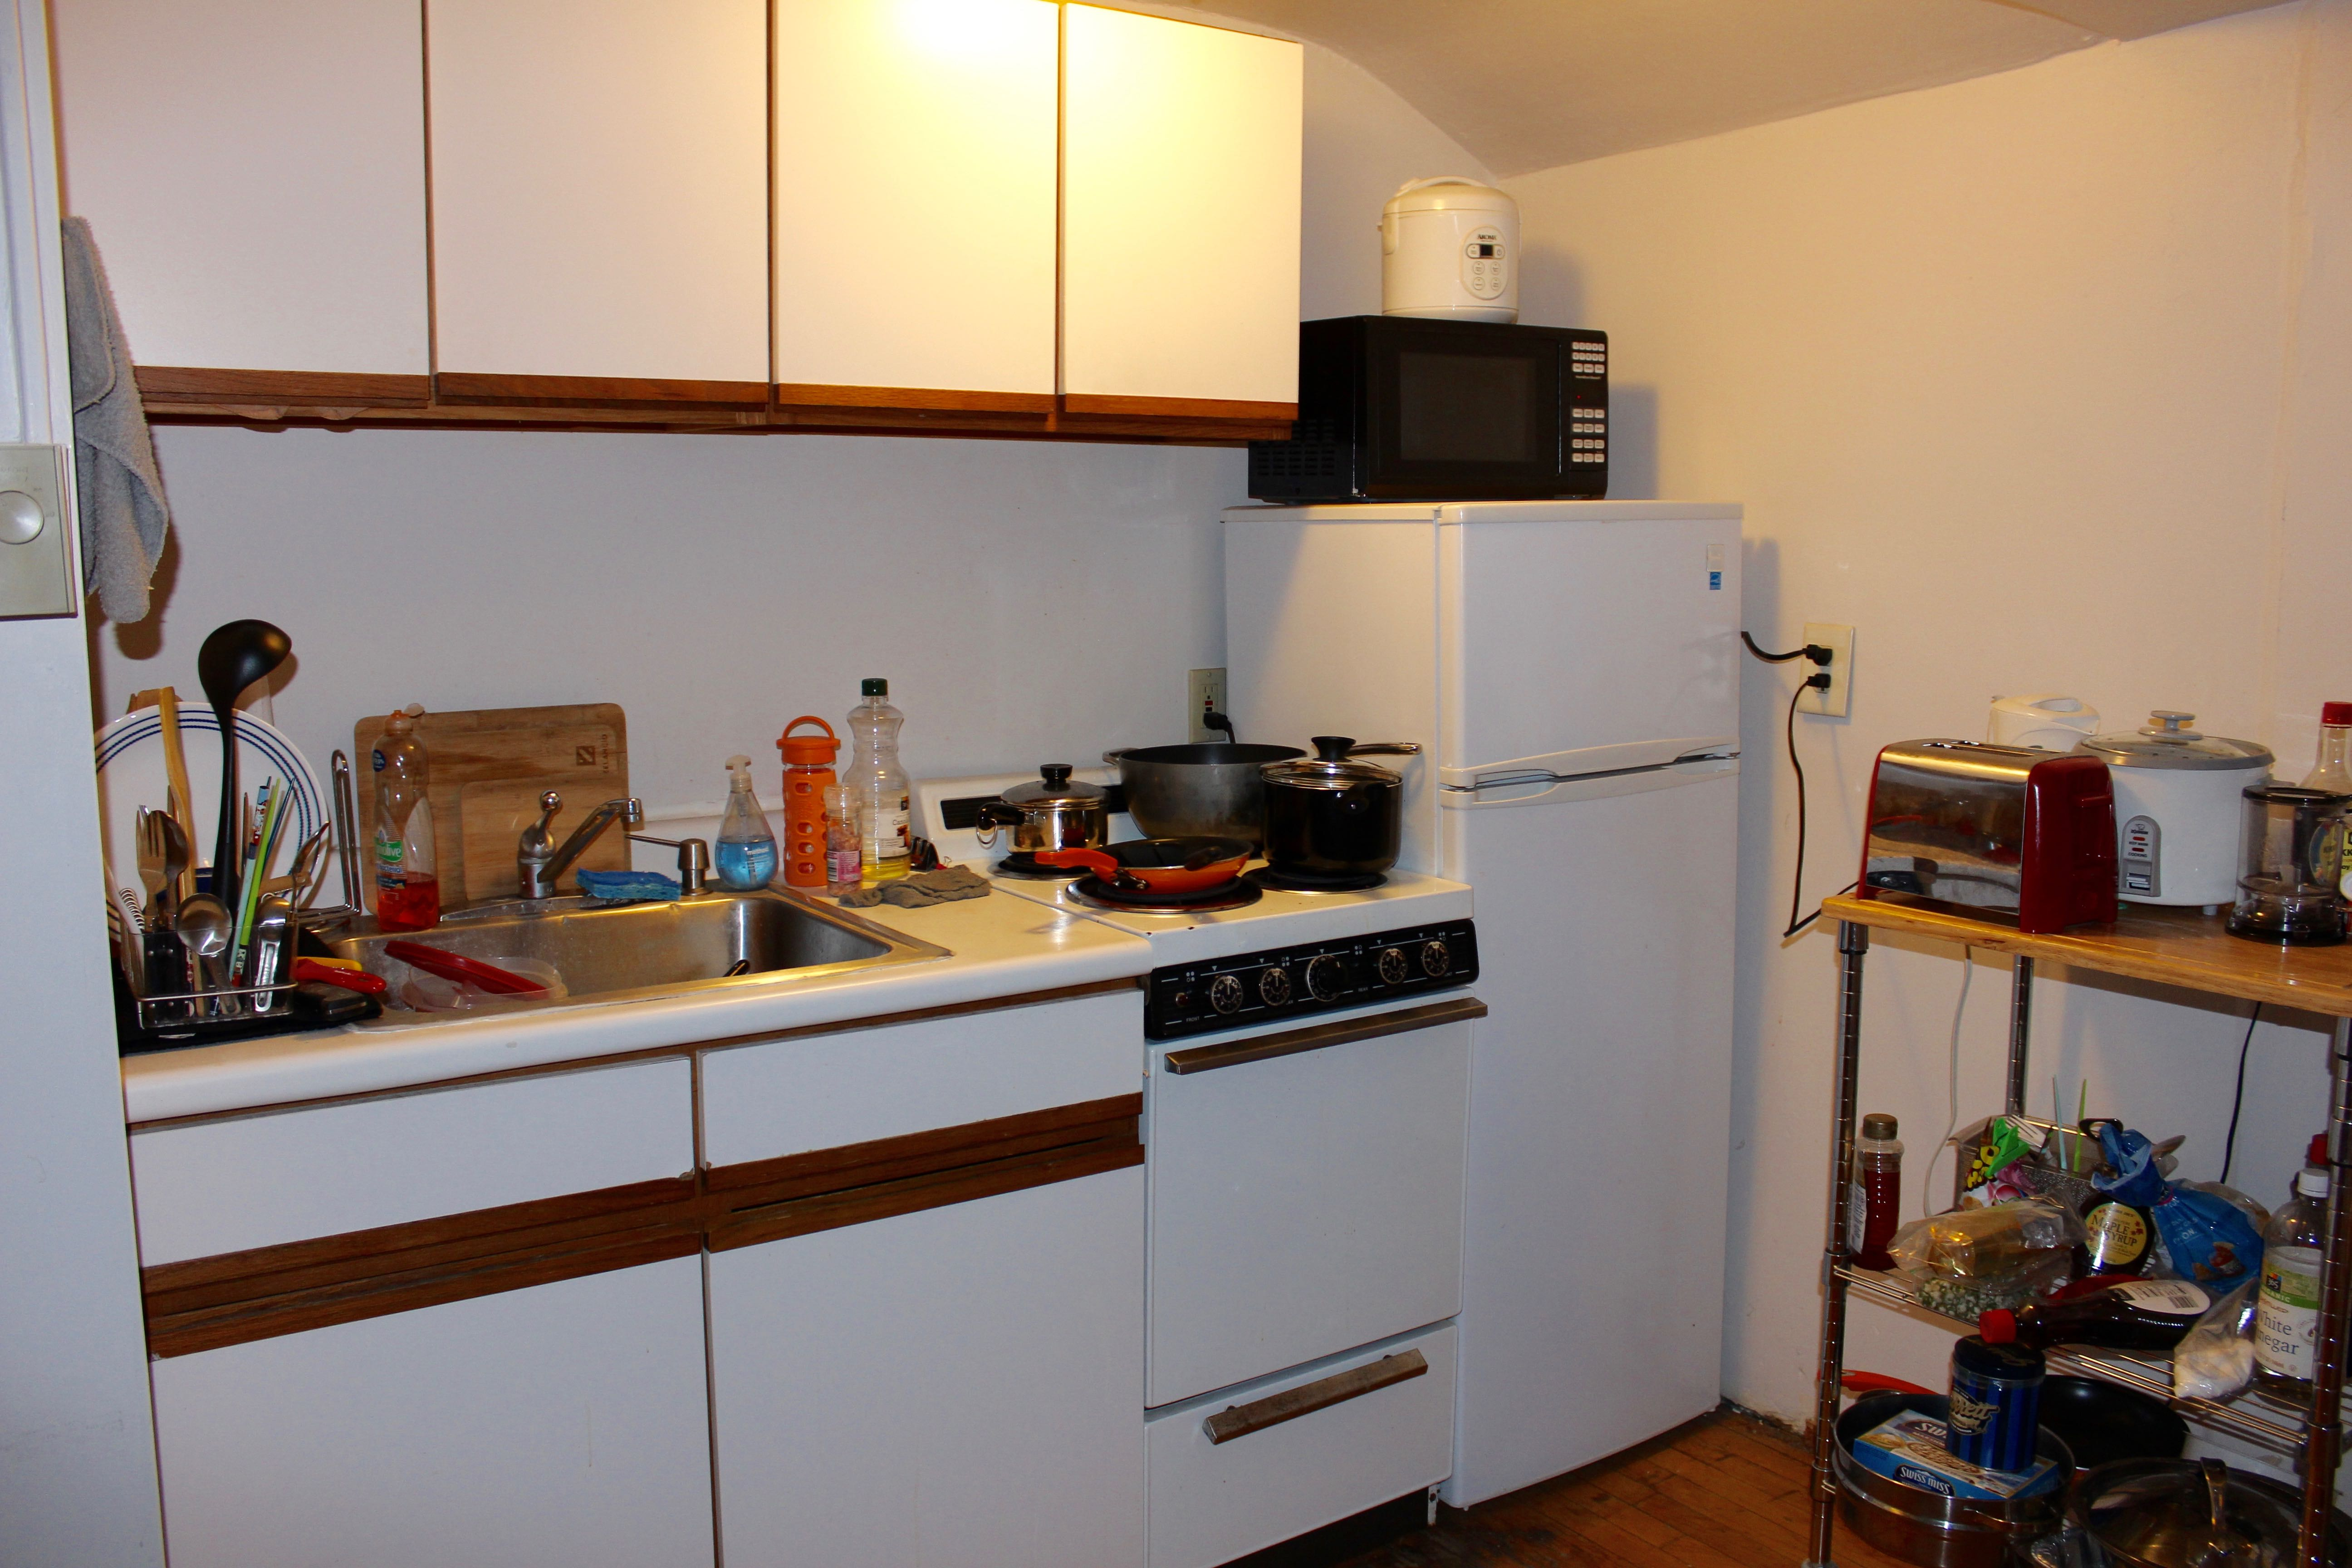 Studio on , Parking For Rent, Laundry in Building